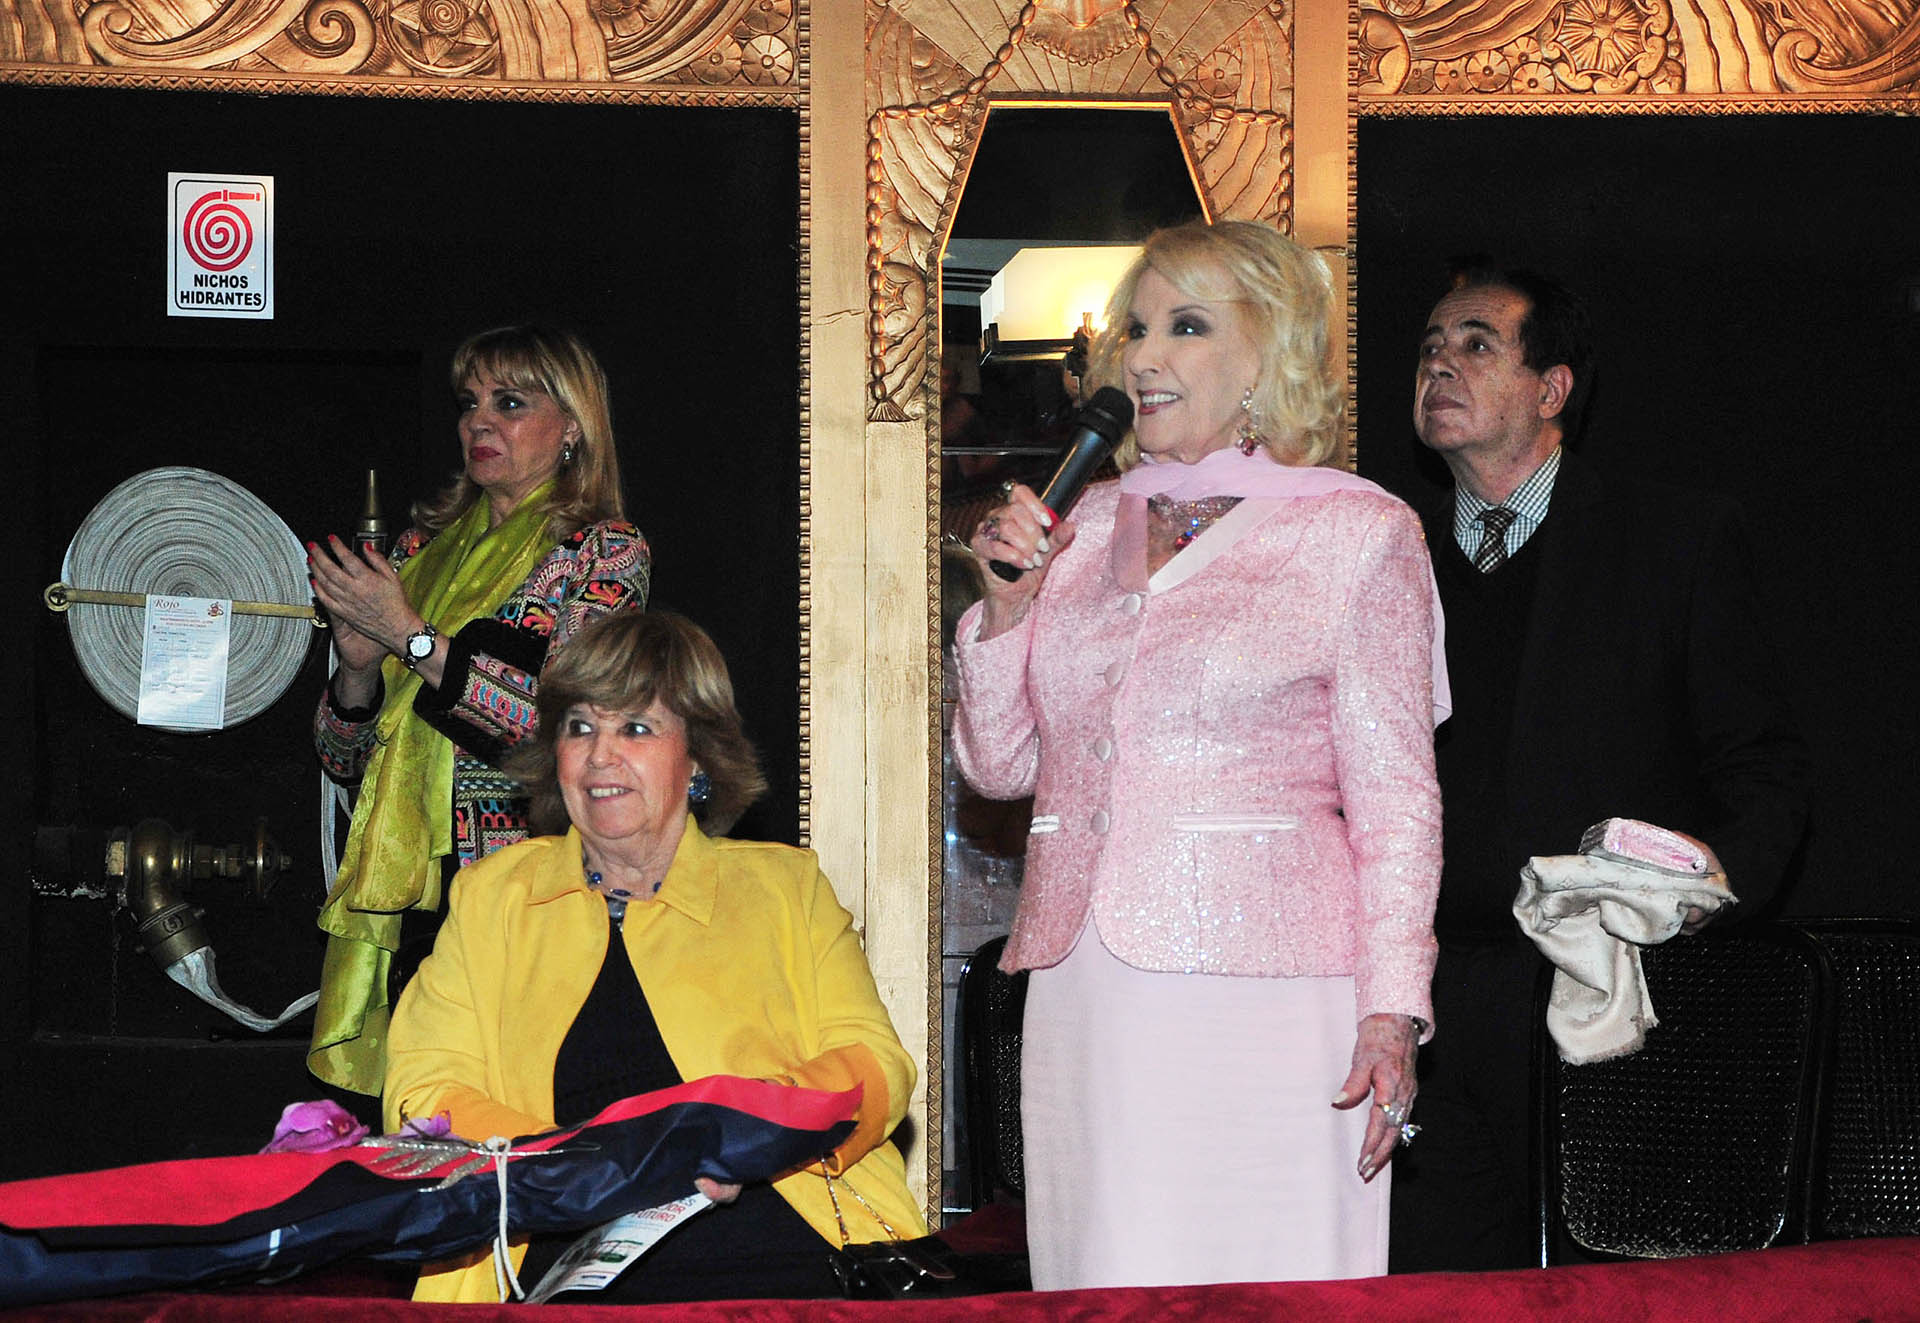 Mirtha Legand